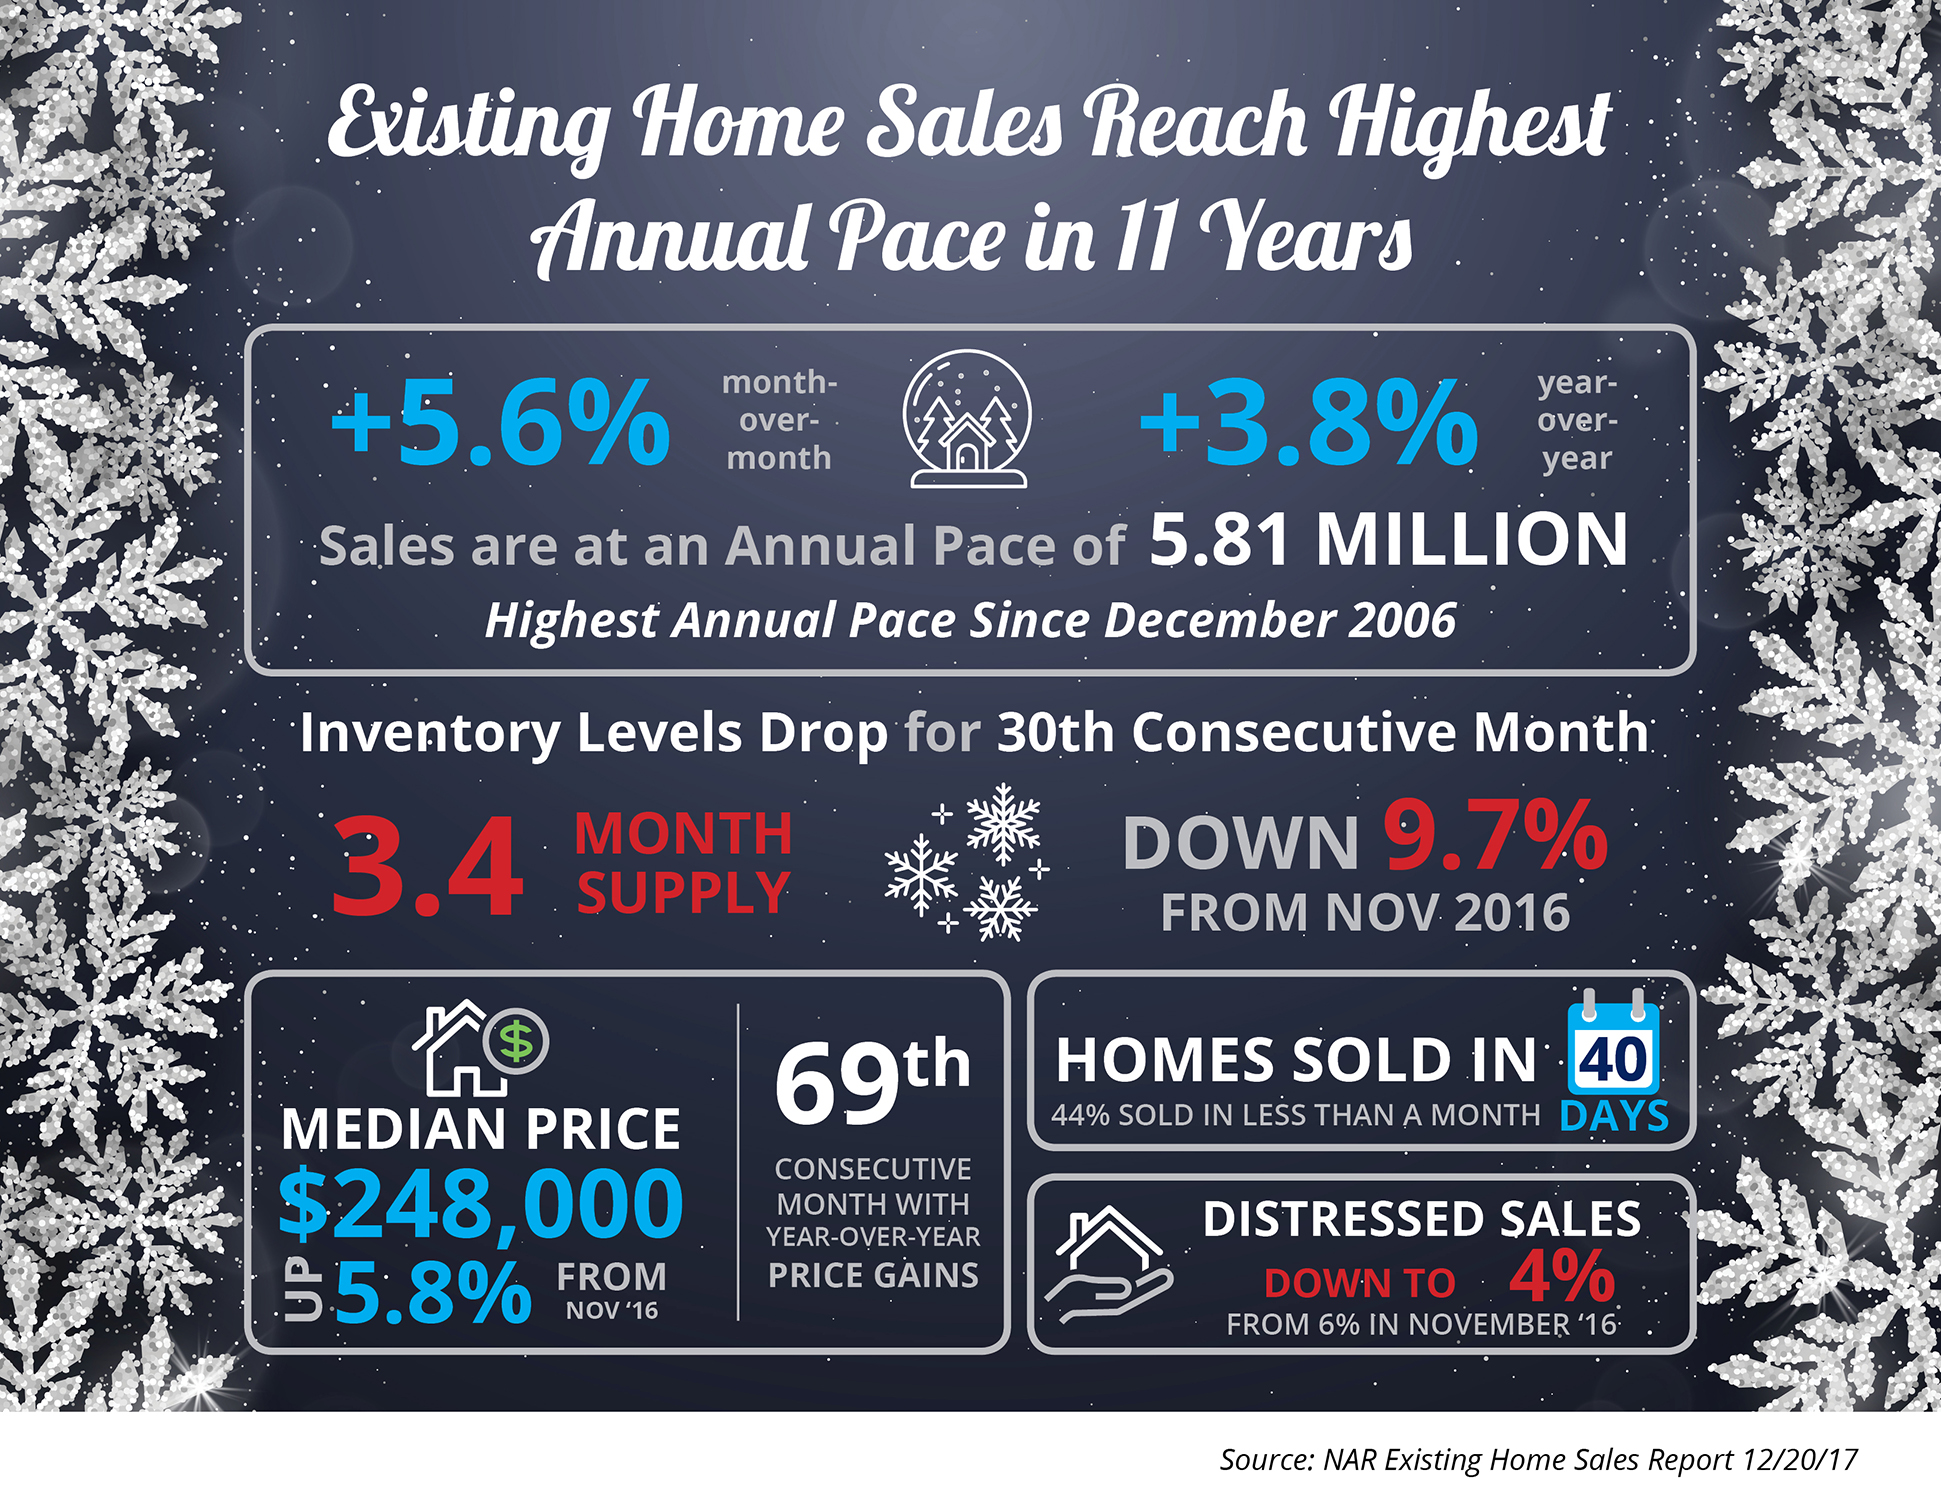 Existing Home S Reach Highest Annual Pace In 11 Years Infographic Simplifying The